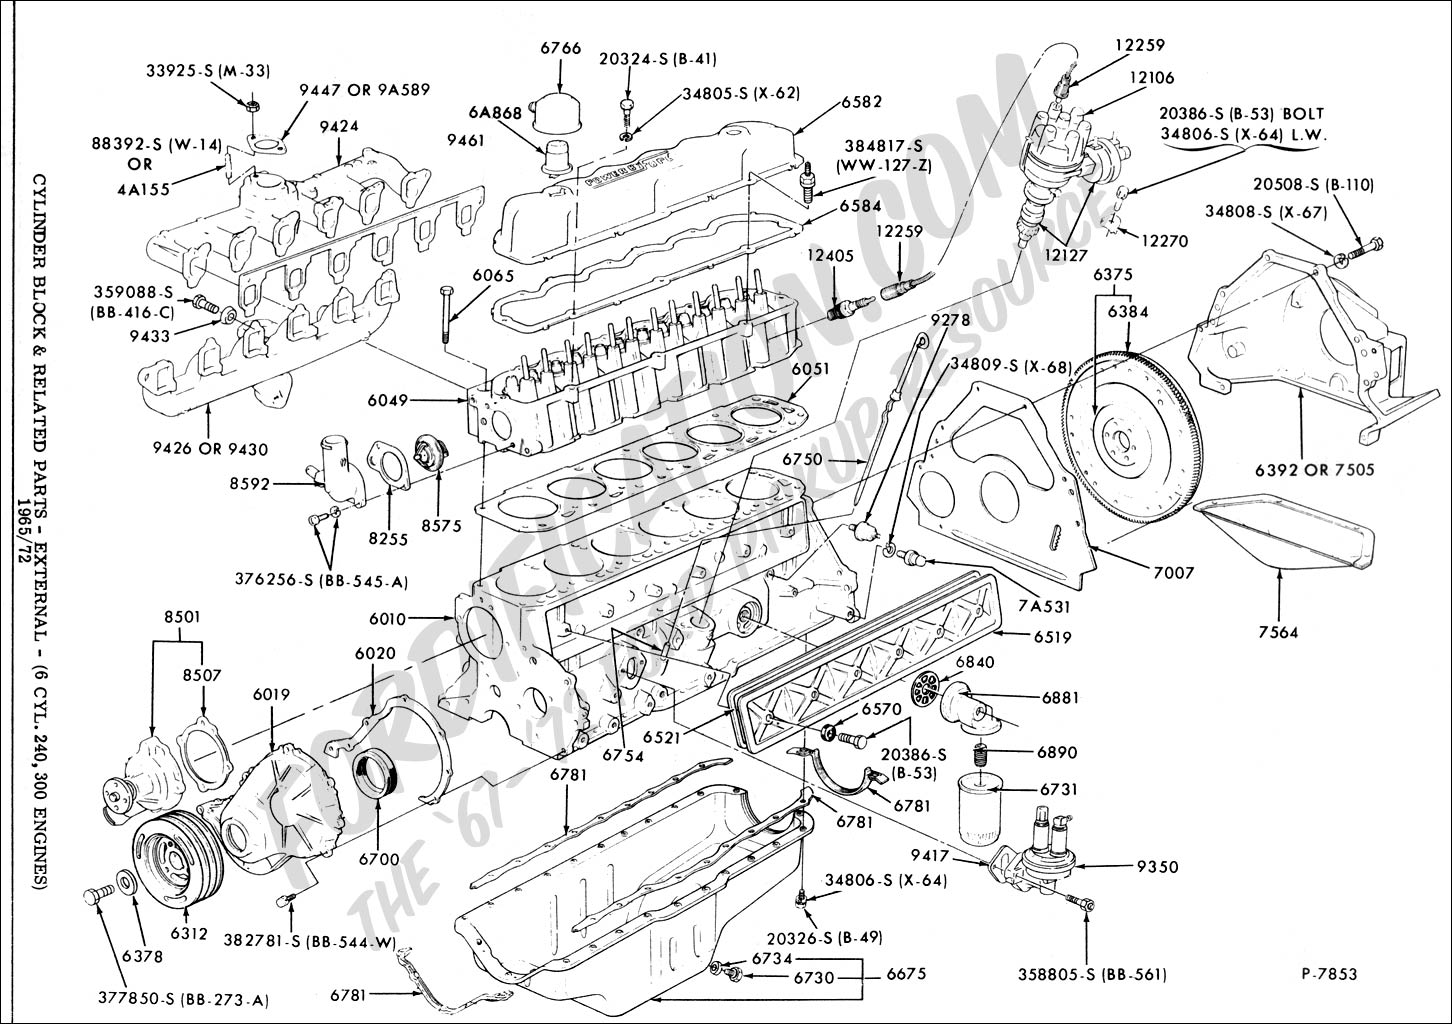 1964 ford 390 engine diagrams 1969 ford 390 engine wiring